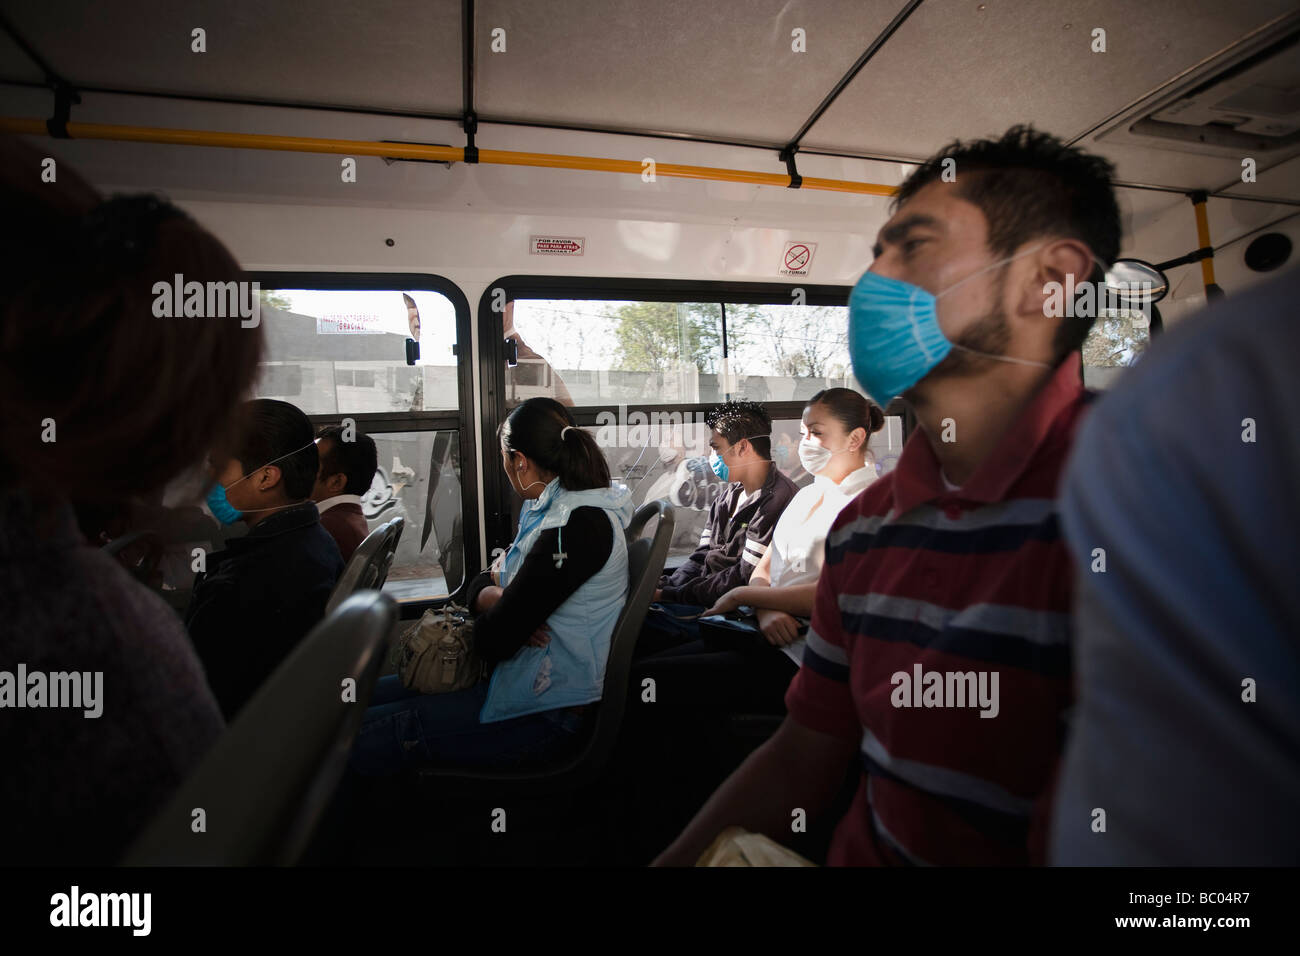 People inside a bus wearing masks during the swine flu epidemic in Mexico City, DF, Mexico. - Stock Image